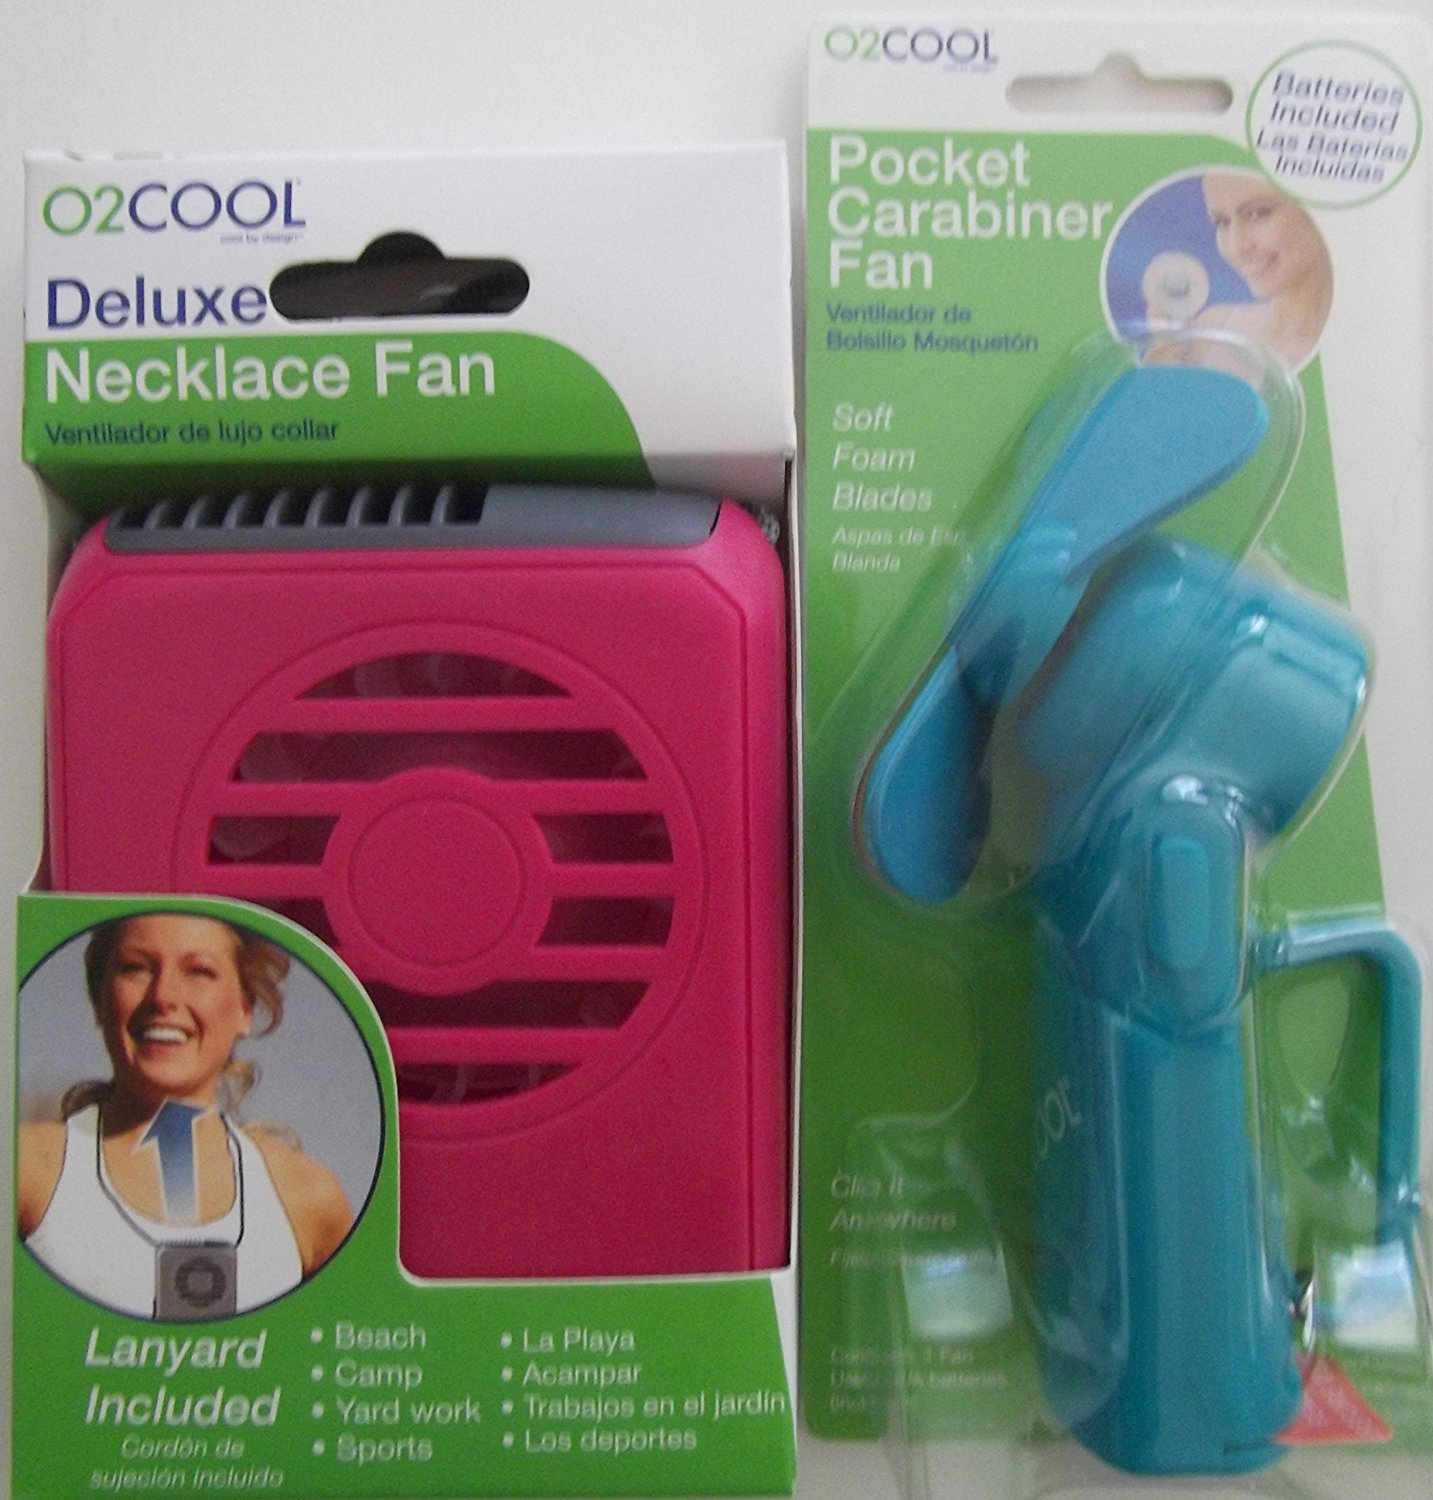 O2 Cool Fan, Deluxe Necklace Fan and Pocket Carabiner Fan with batteries, O2Cool Pocket Carabiner Fan with batteries - Model FP02001B - Assorted Color By O2COOL